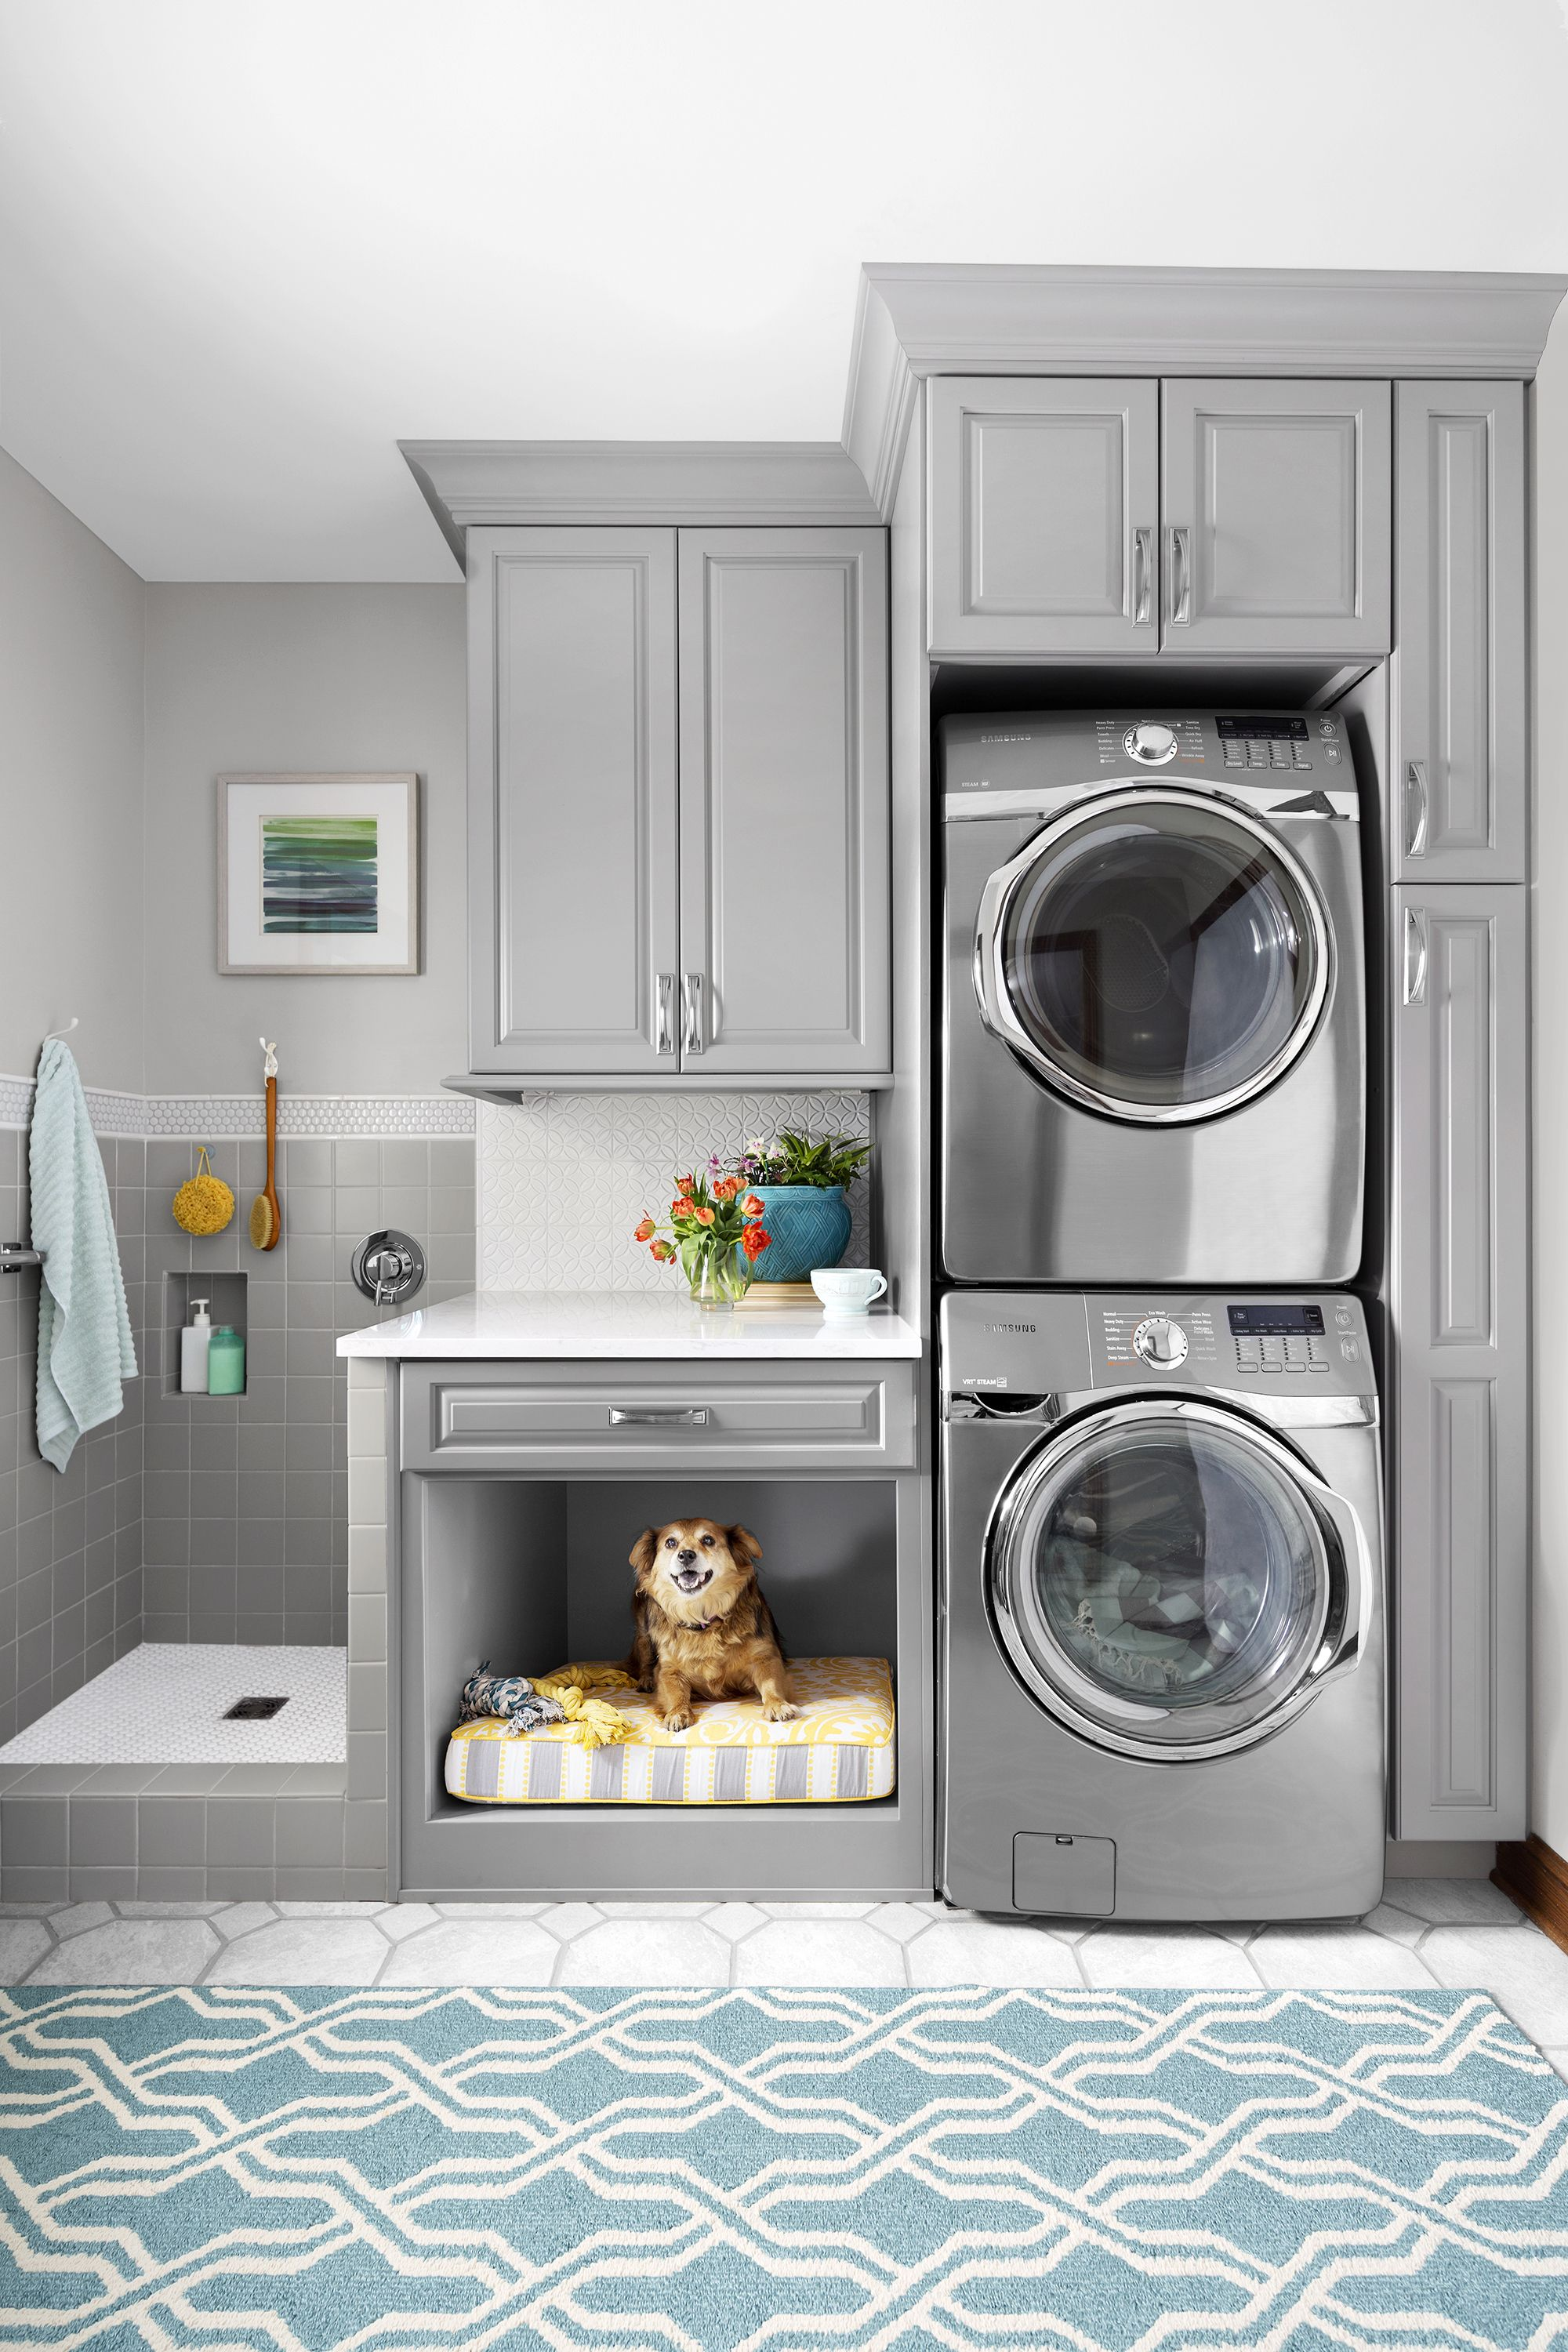 laundry room for vertical spaces diy laundry room design small rh pinterest com